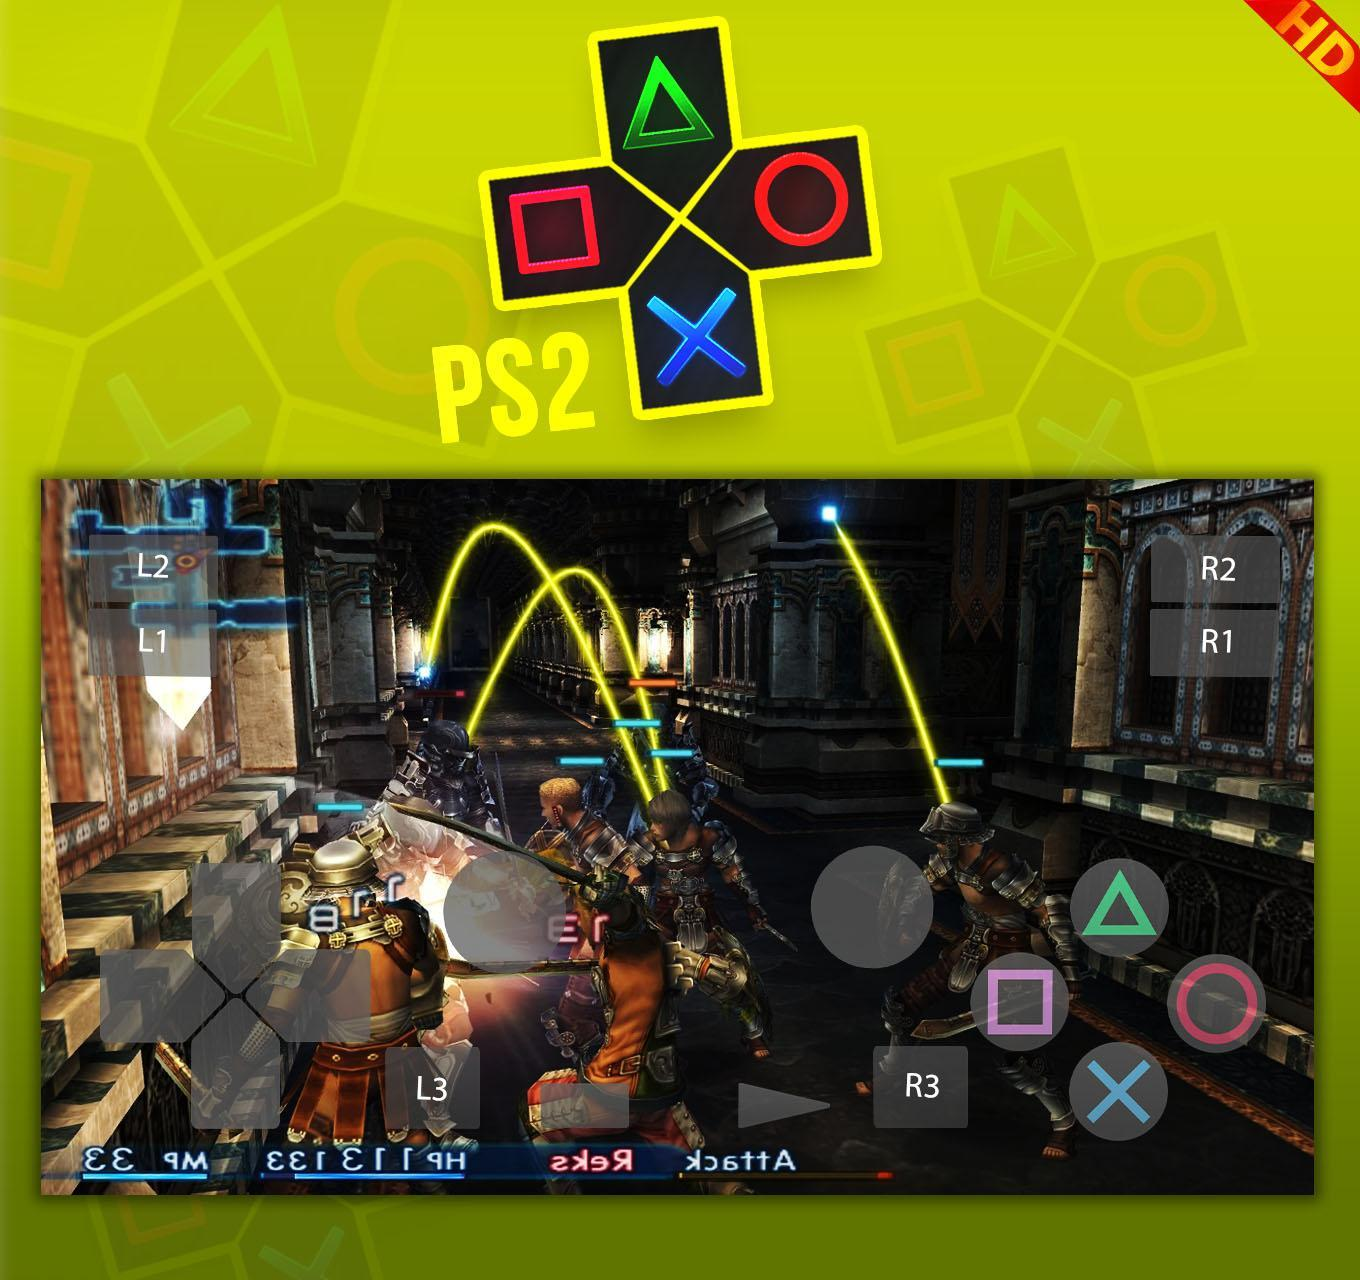 Download ps2 emulator android games | DamonPS2 PRO (PS2 Emulator) v2